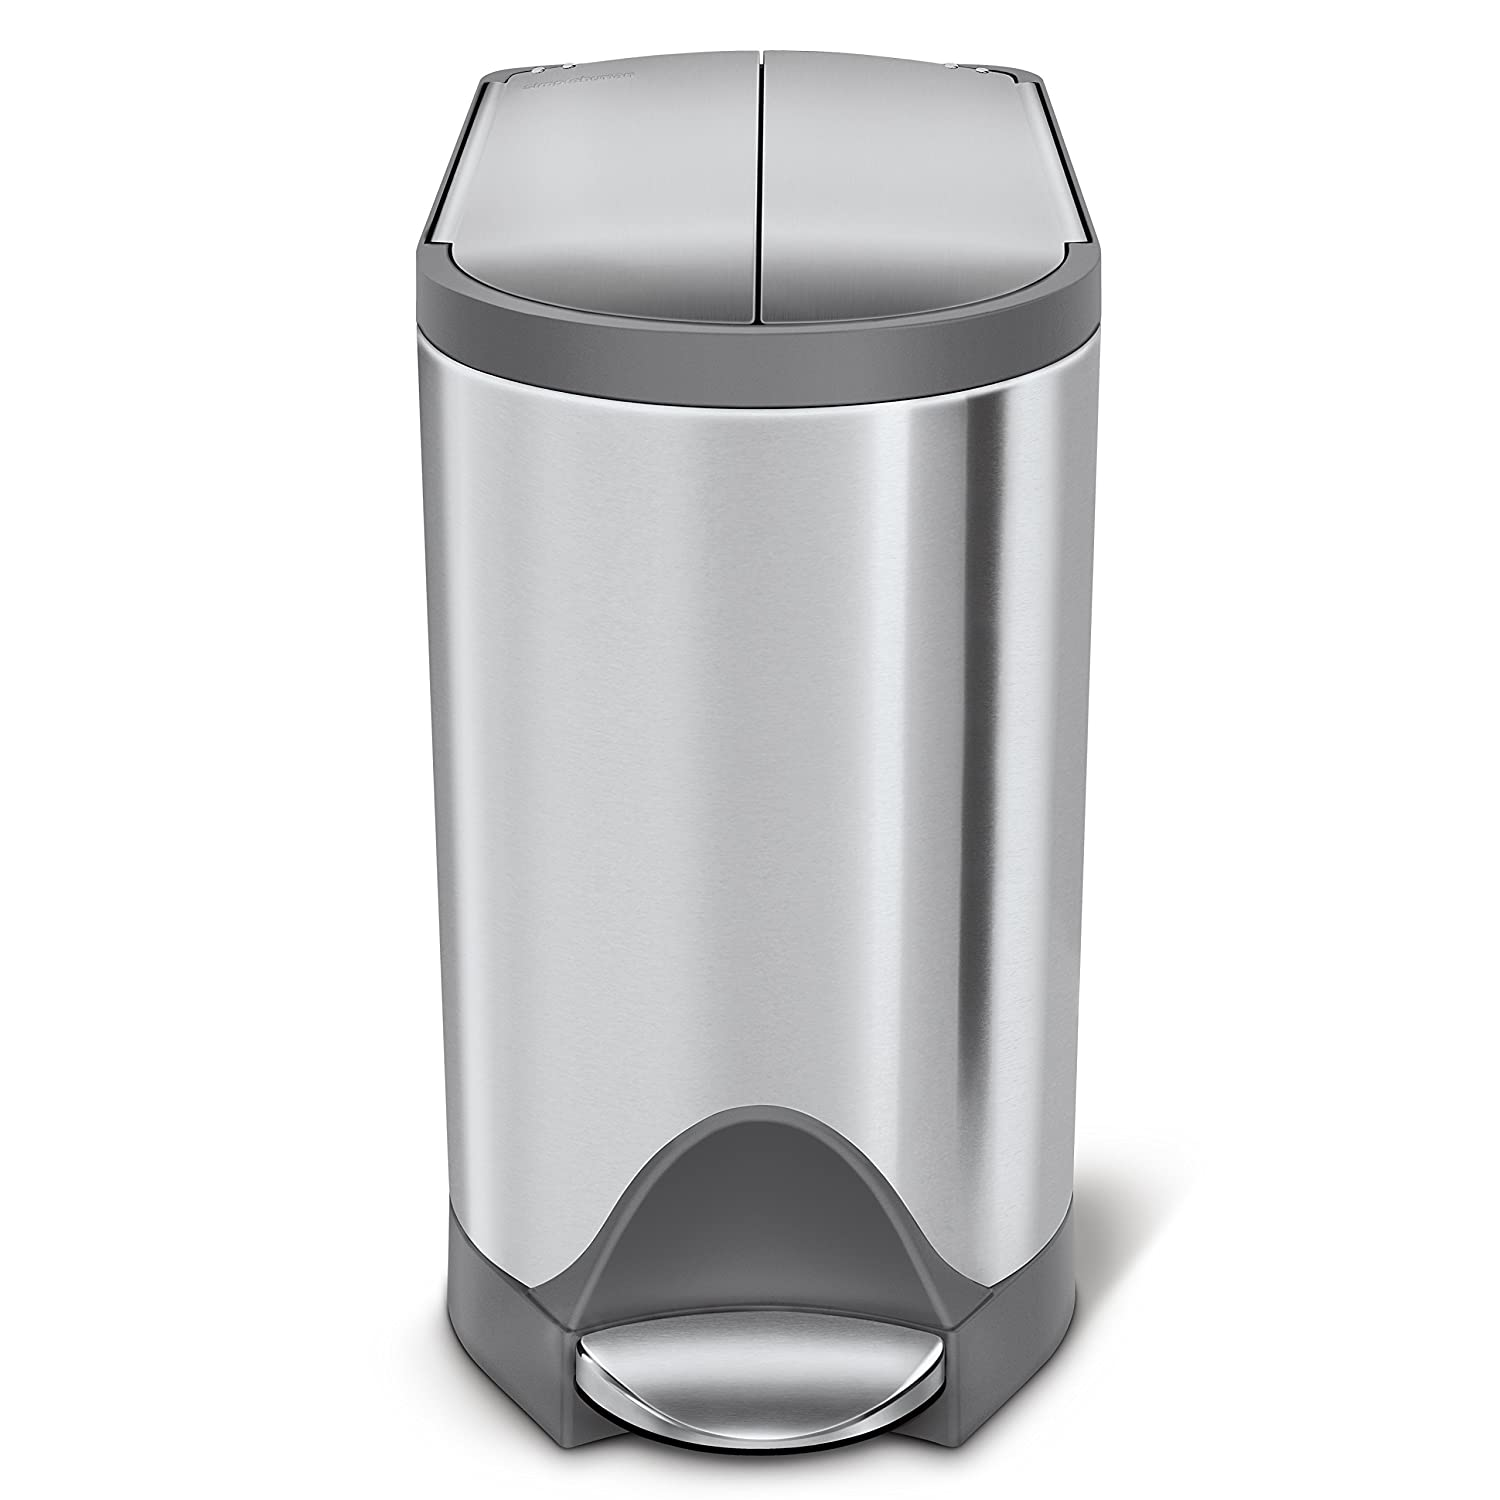 Amazon simplehuman Butterfly Step Trash Can 10 L 2 6 gallon